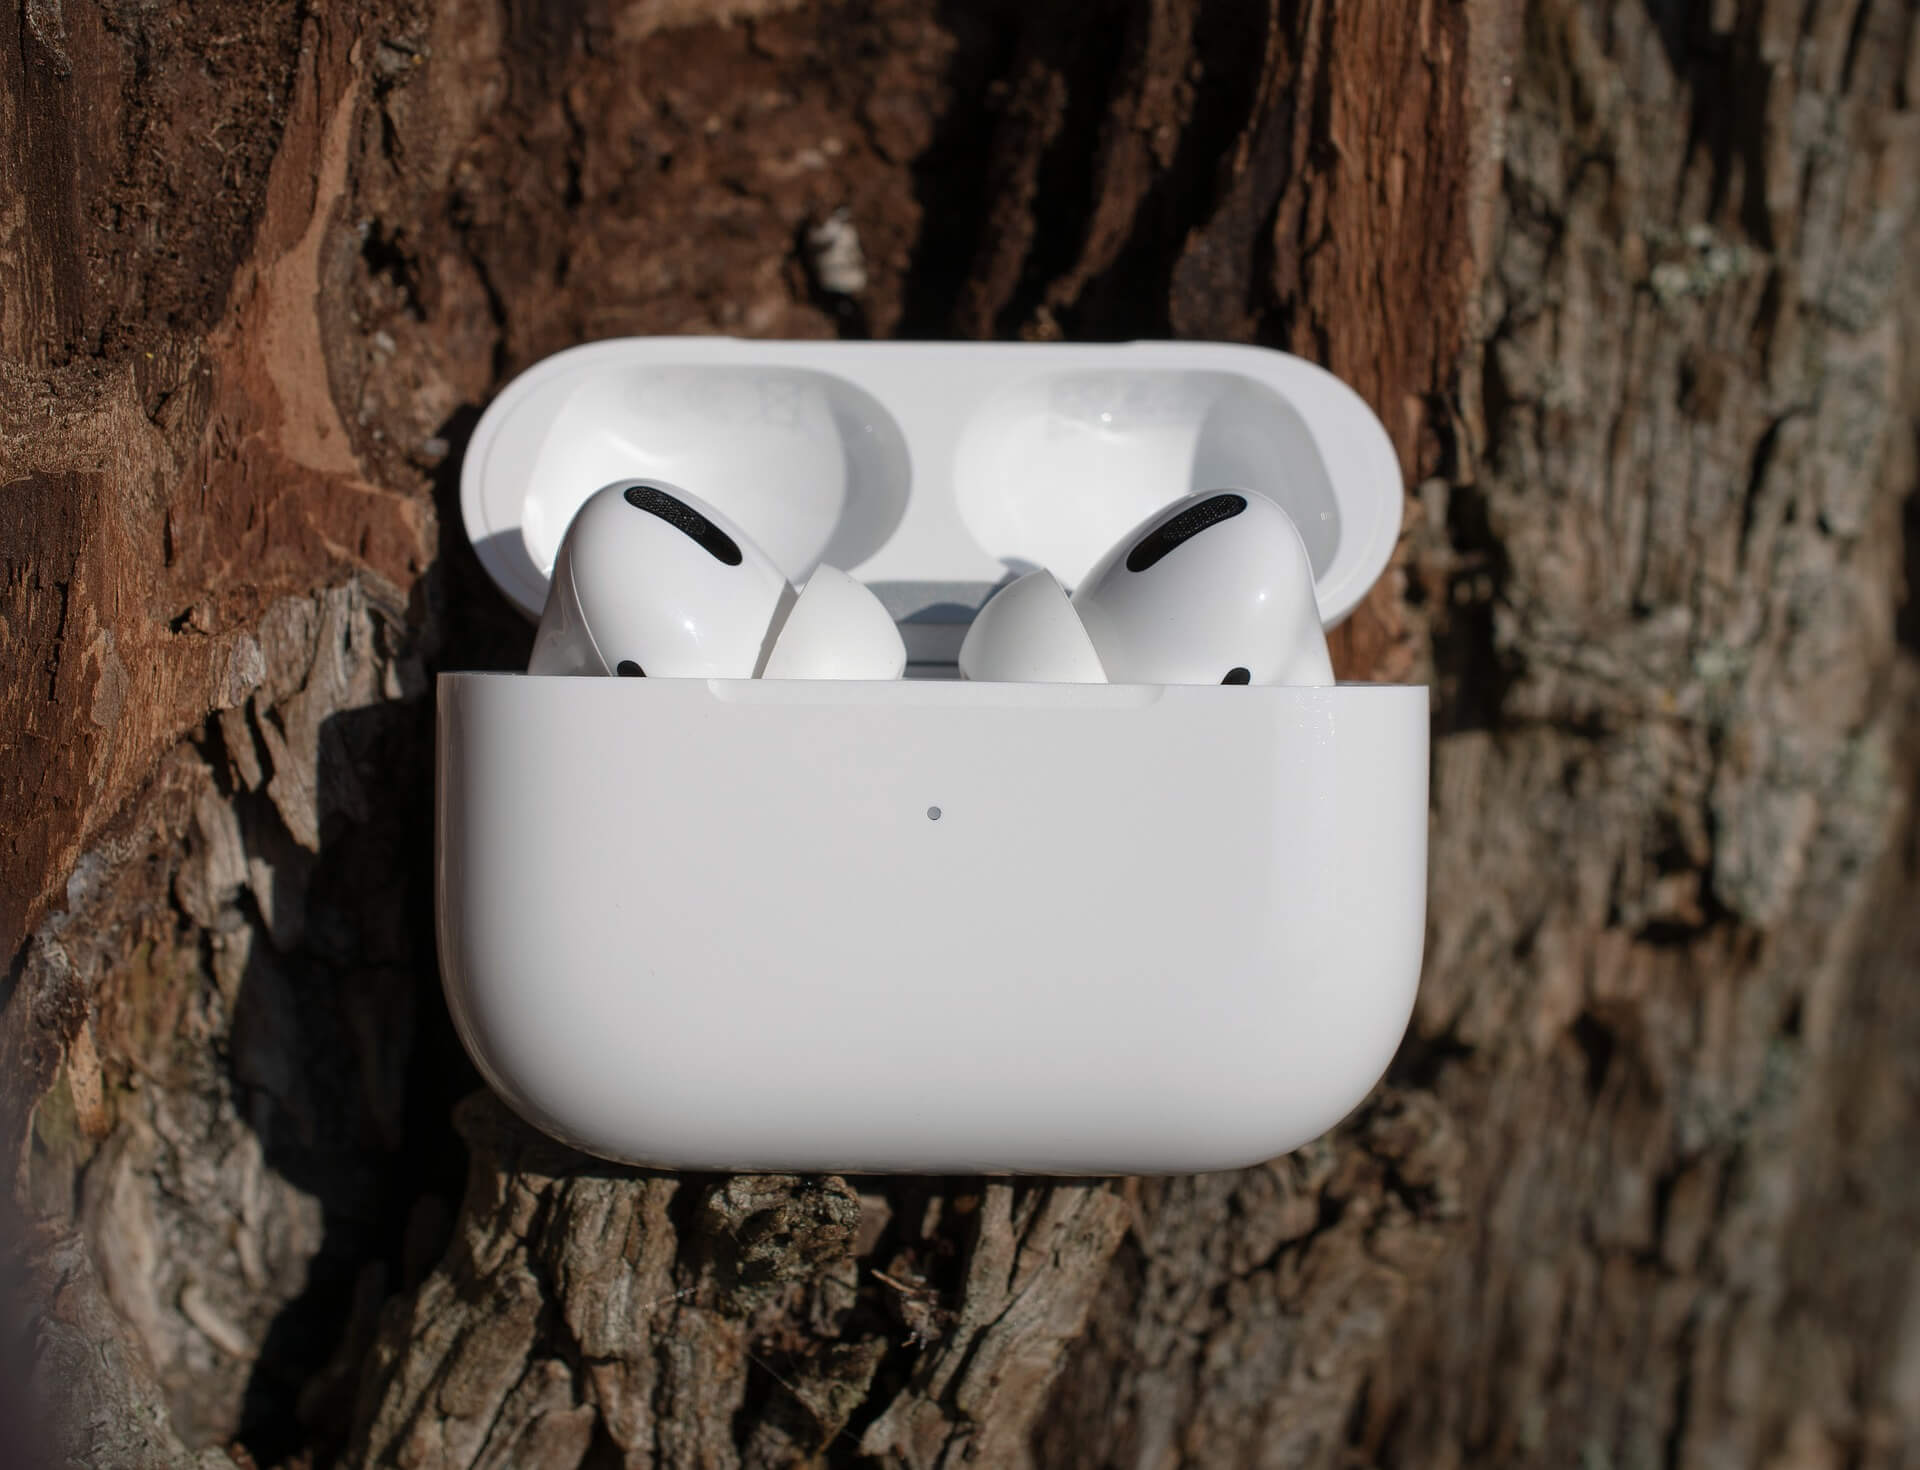 airpods-5023660_1920